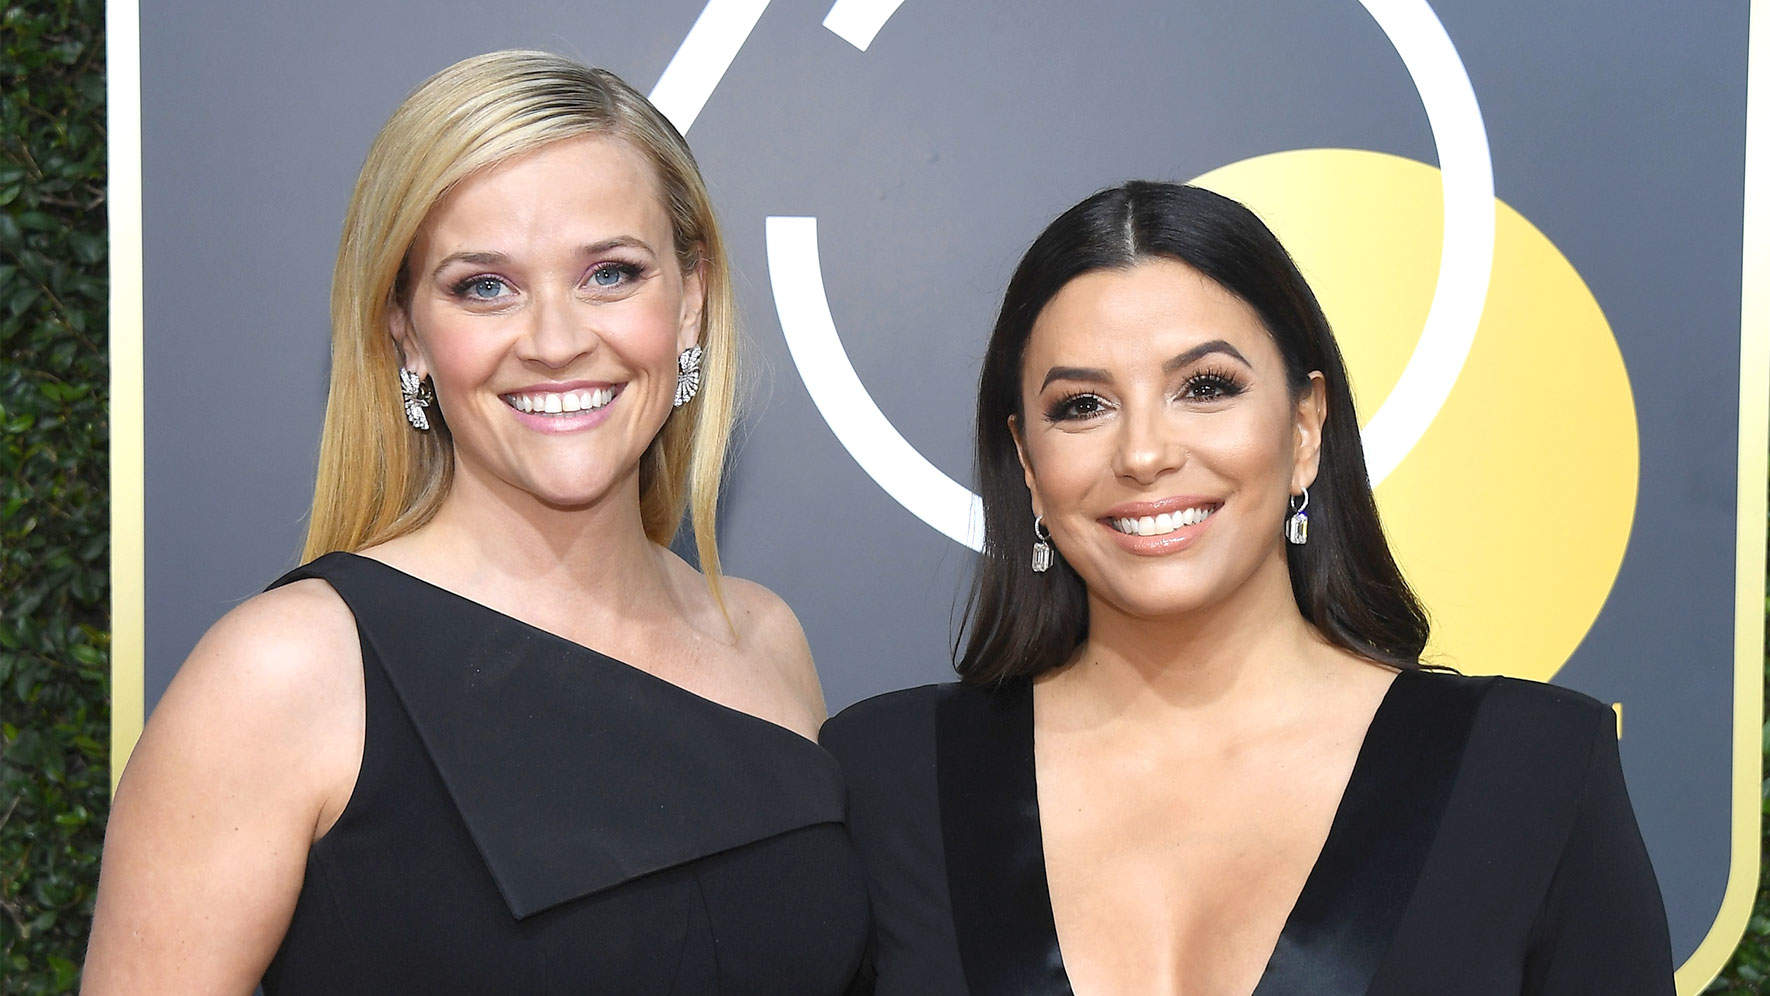 Reese Witherspoon and Pregnant Eva Longoria Walk Golden Globes Red Carpet Together - in Black